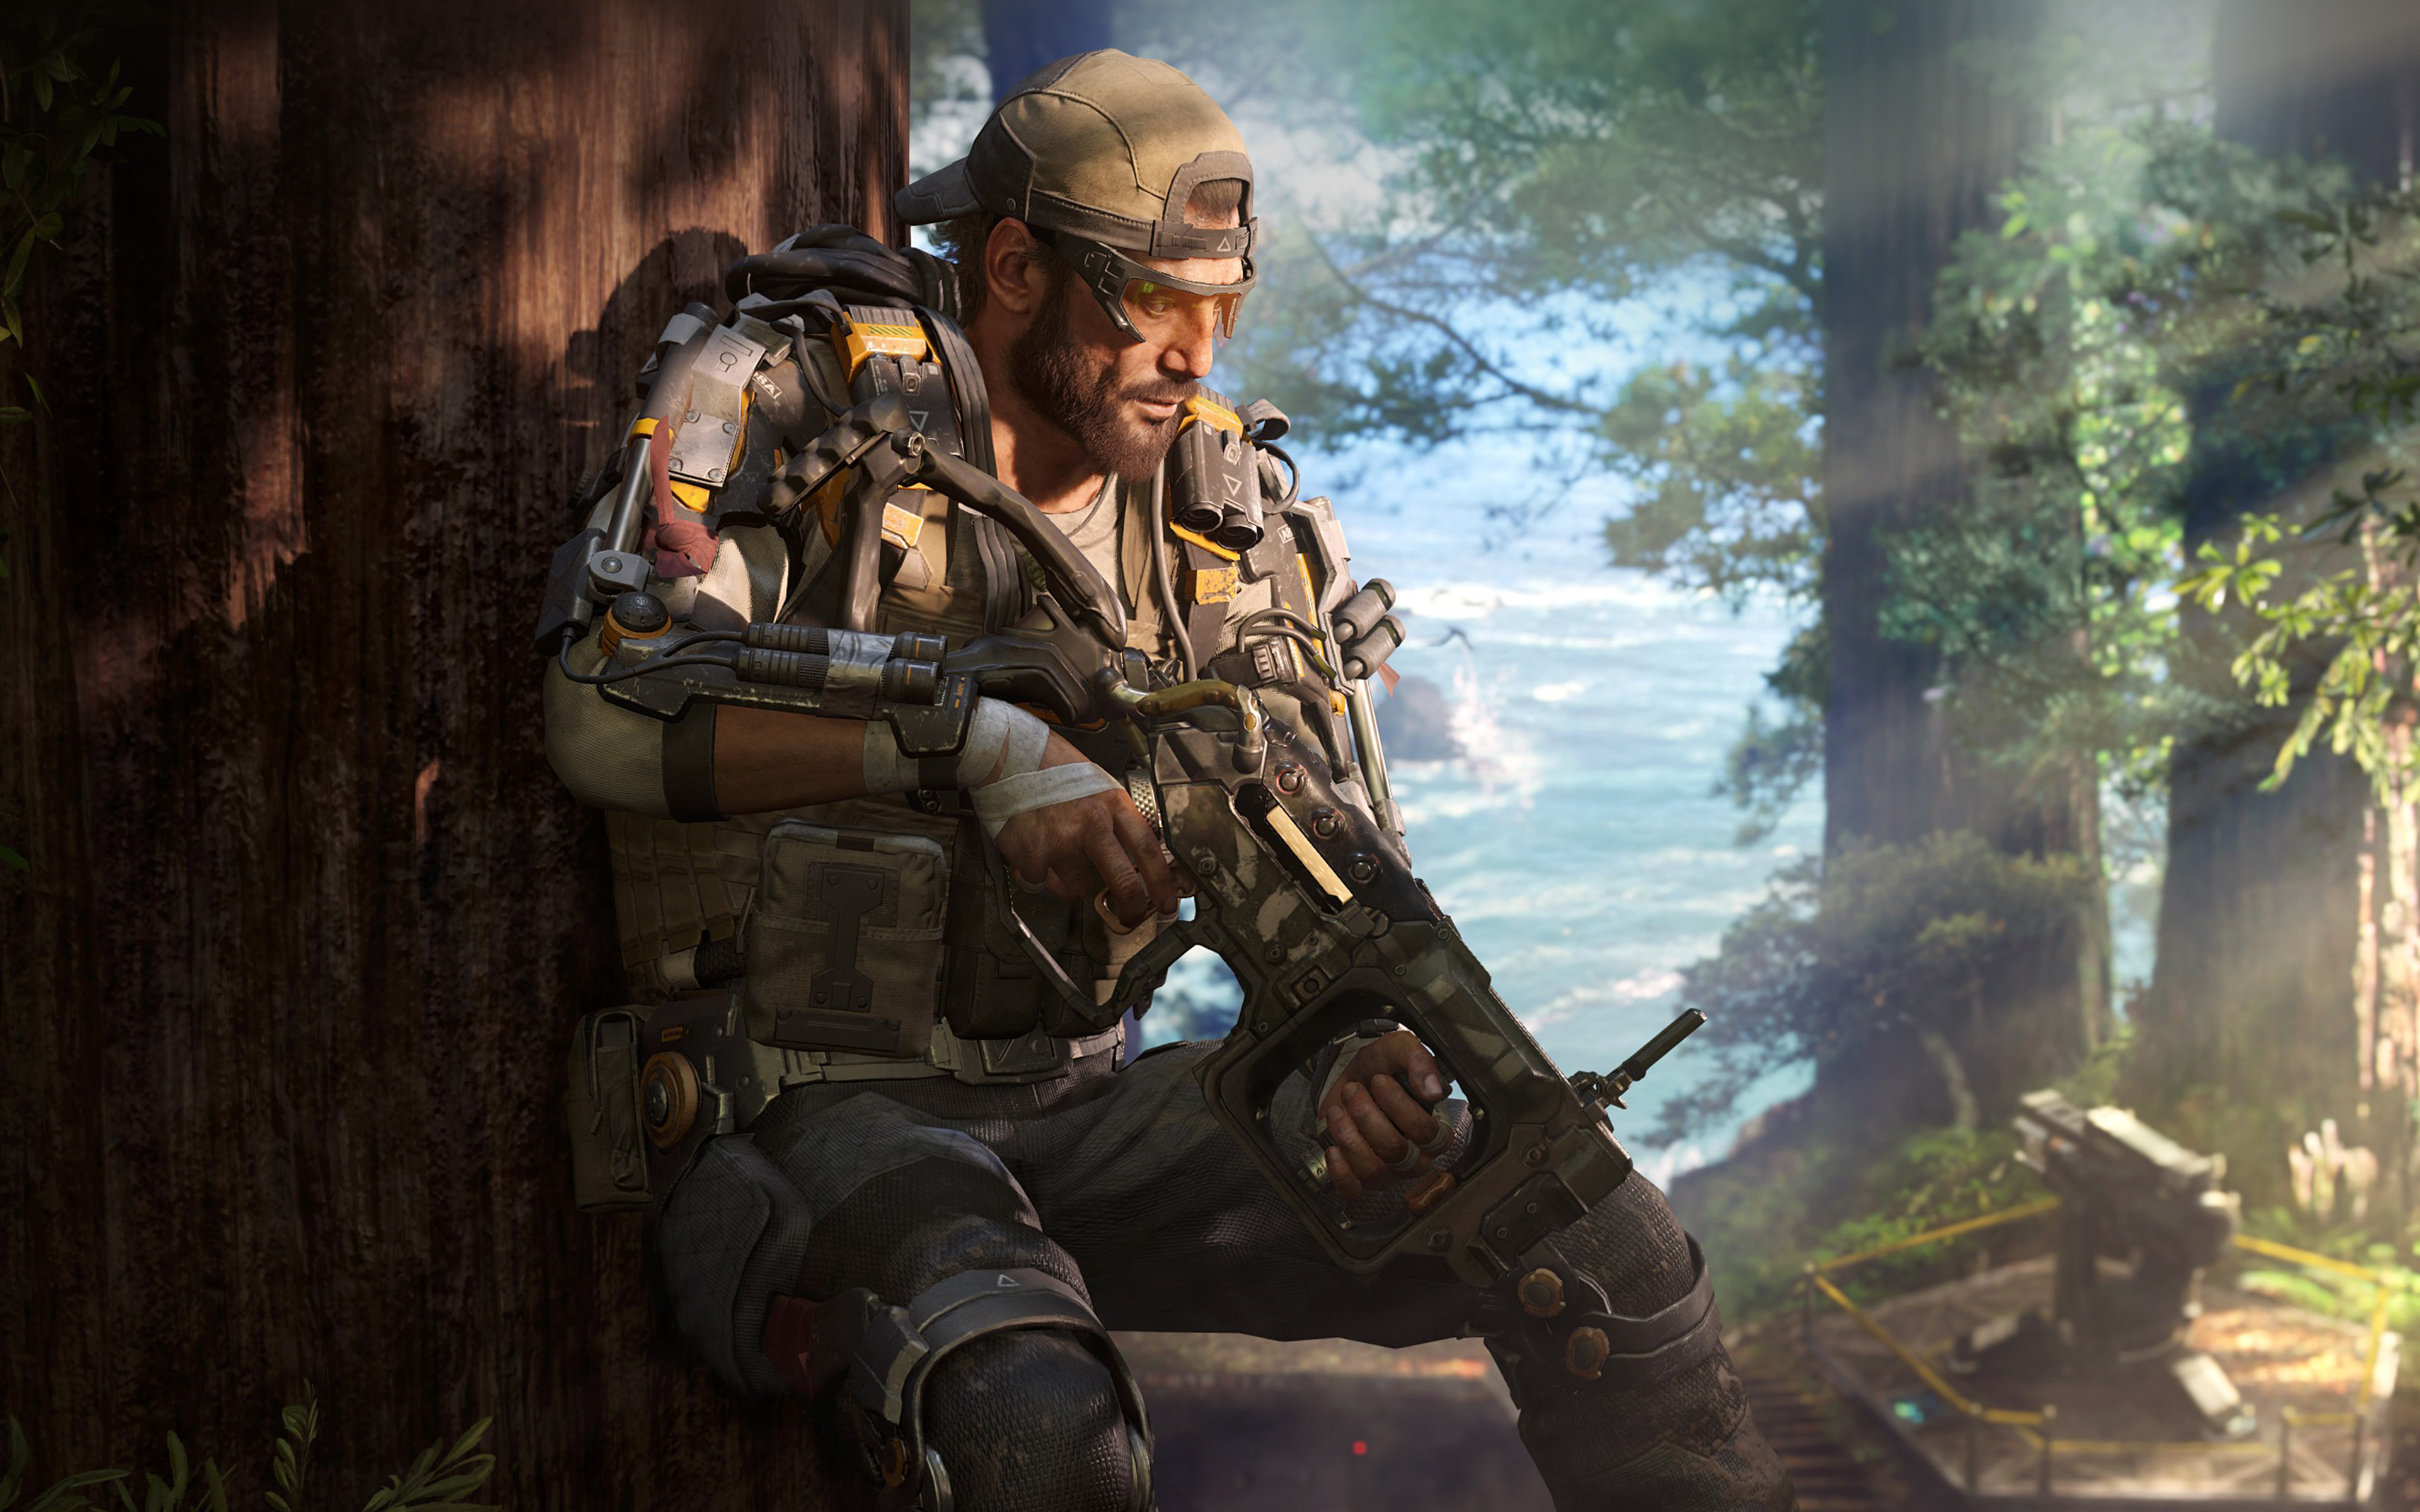 call of duty essays ⛑ today deals media books ⛑ responding to call of duty critical essays on the game franchise paperback cid 53229540 new design, say searching responding to call.